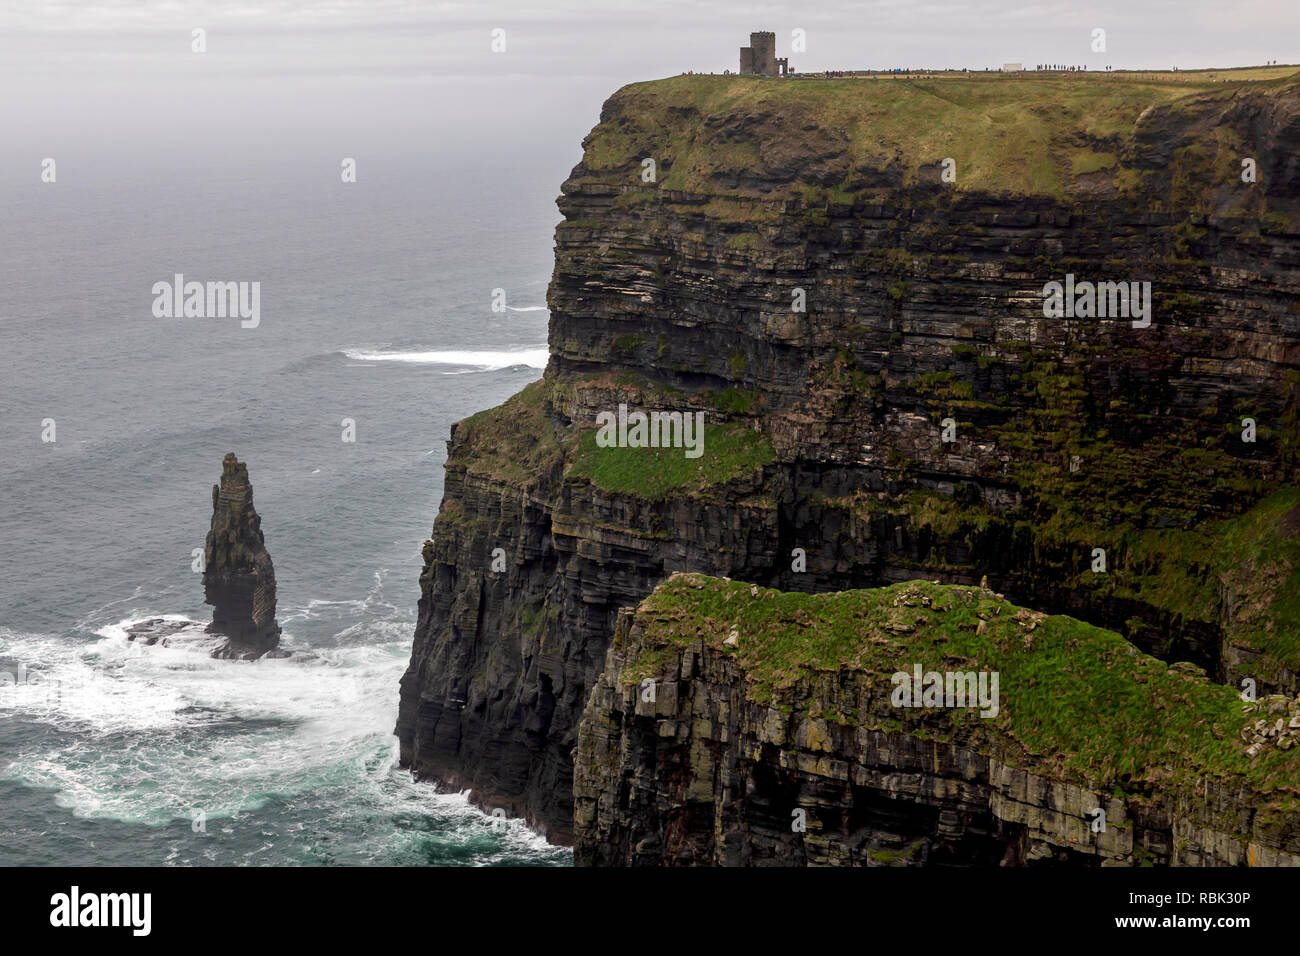 The Cliffs of Moher and O'Brien's Tower on the west coast of Ireland. - Stock Image